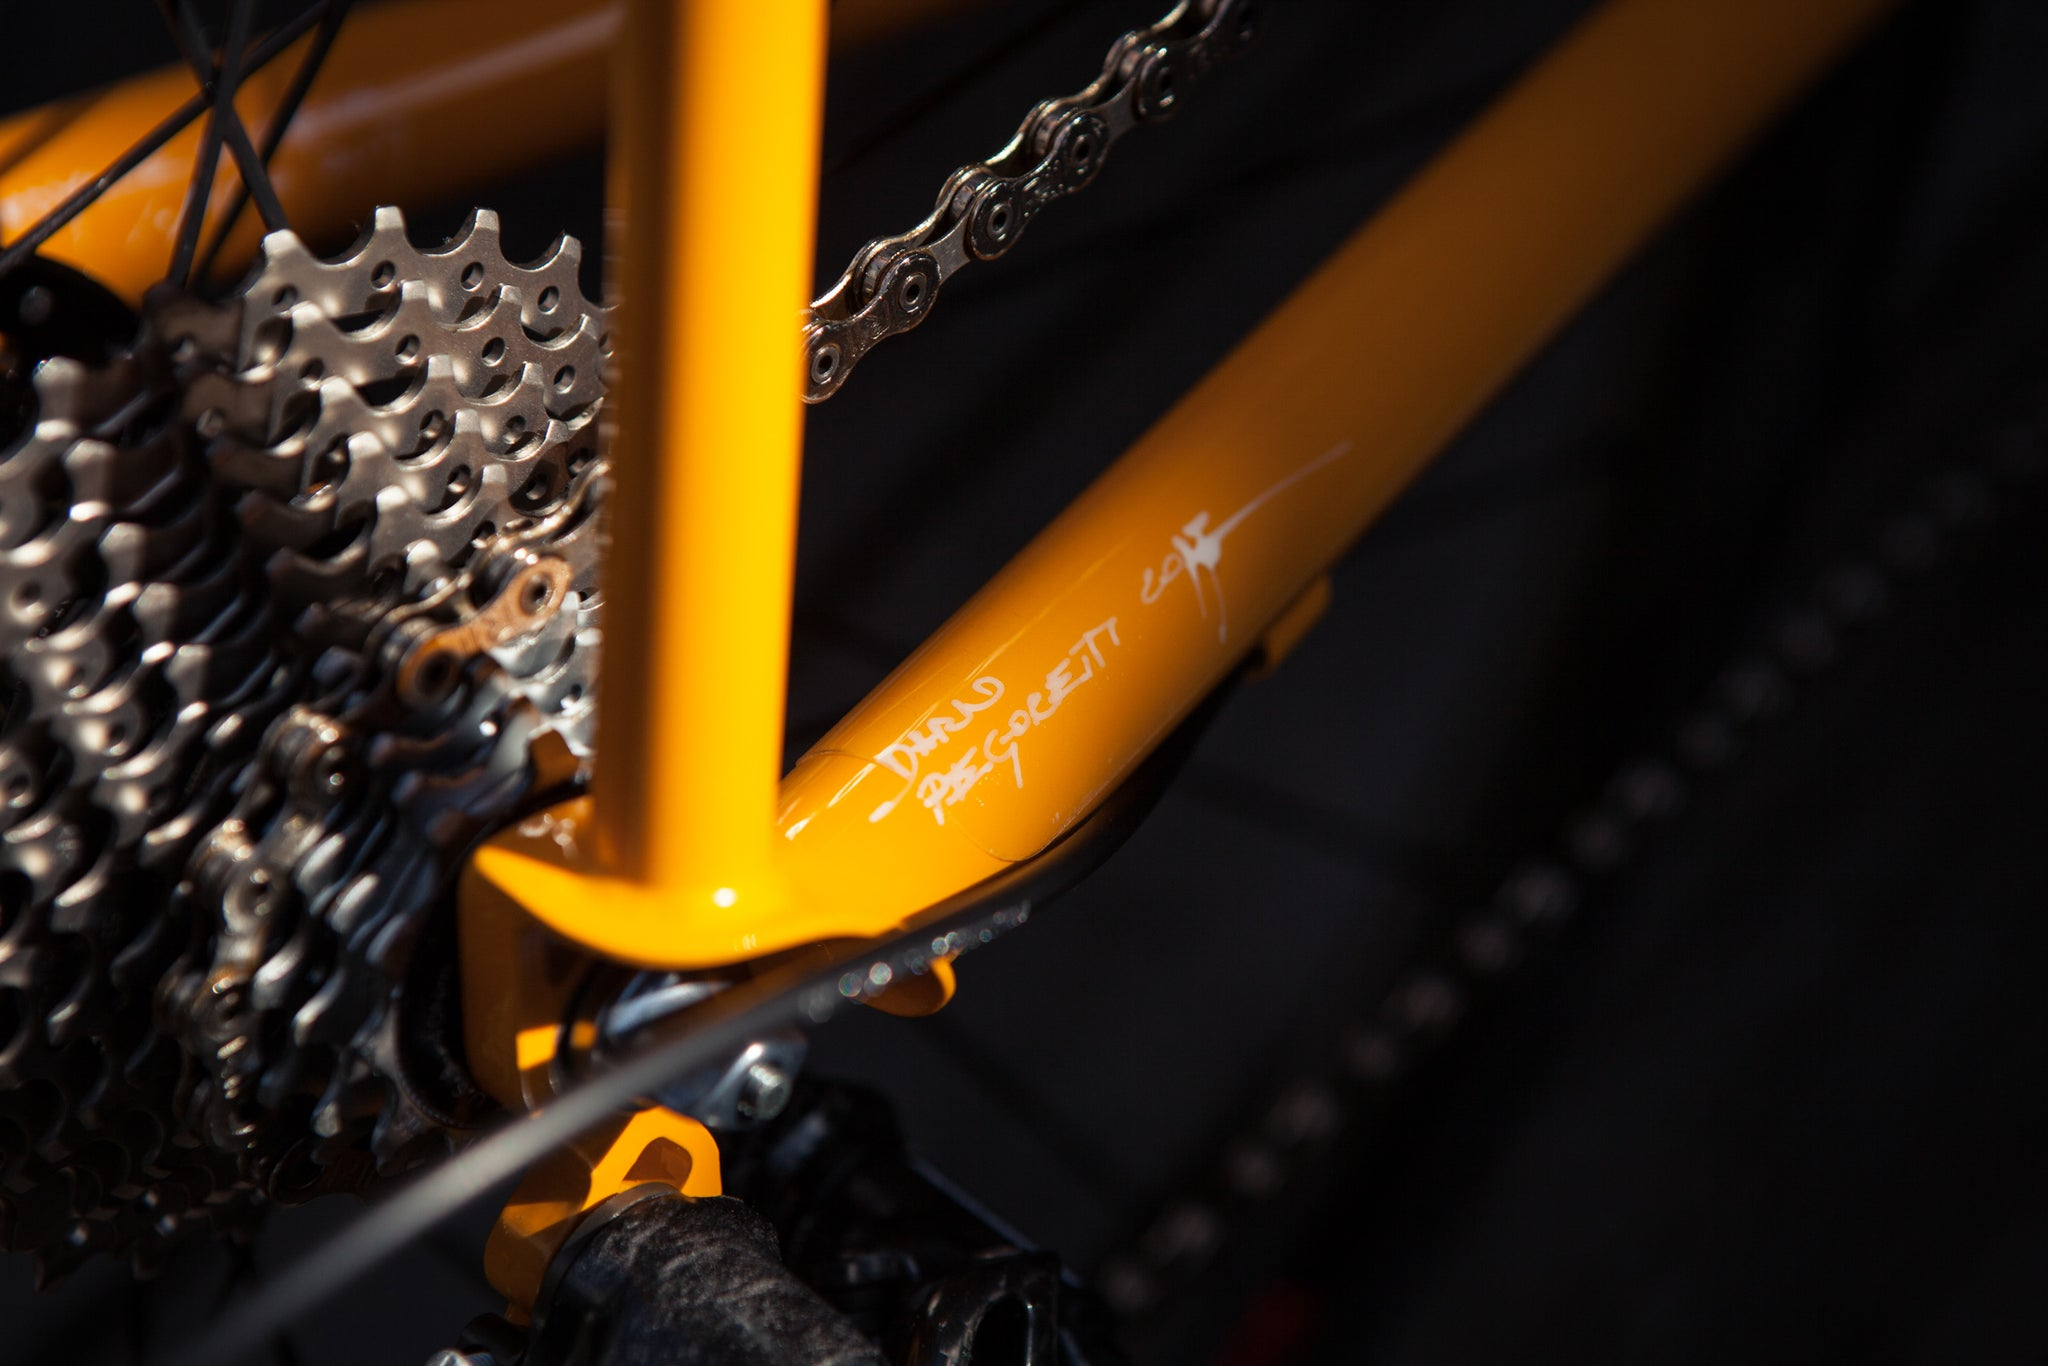 Dario Pegoretti Signature on Ciavette Custom Steel Bike